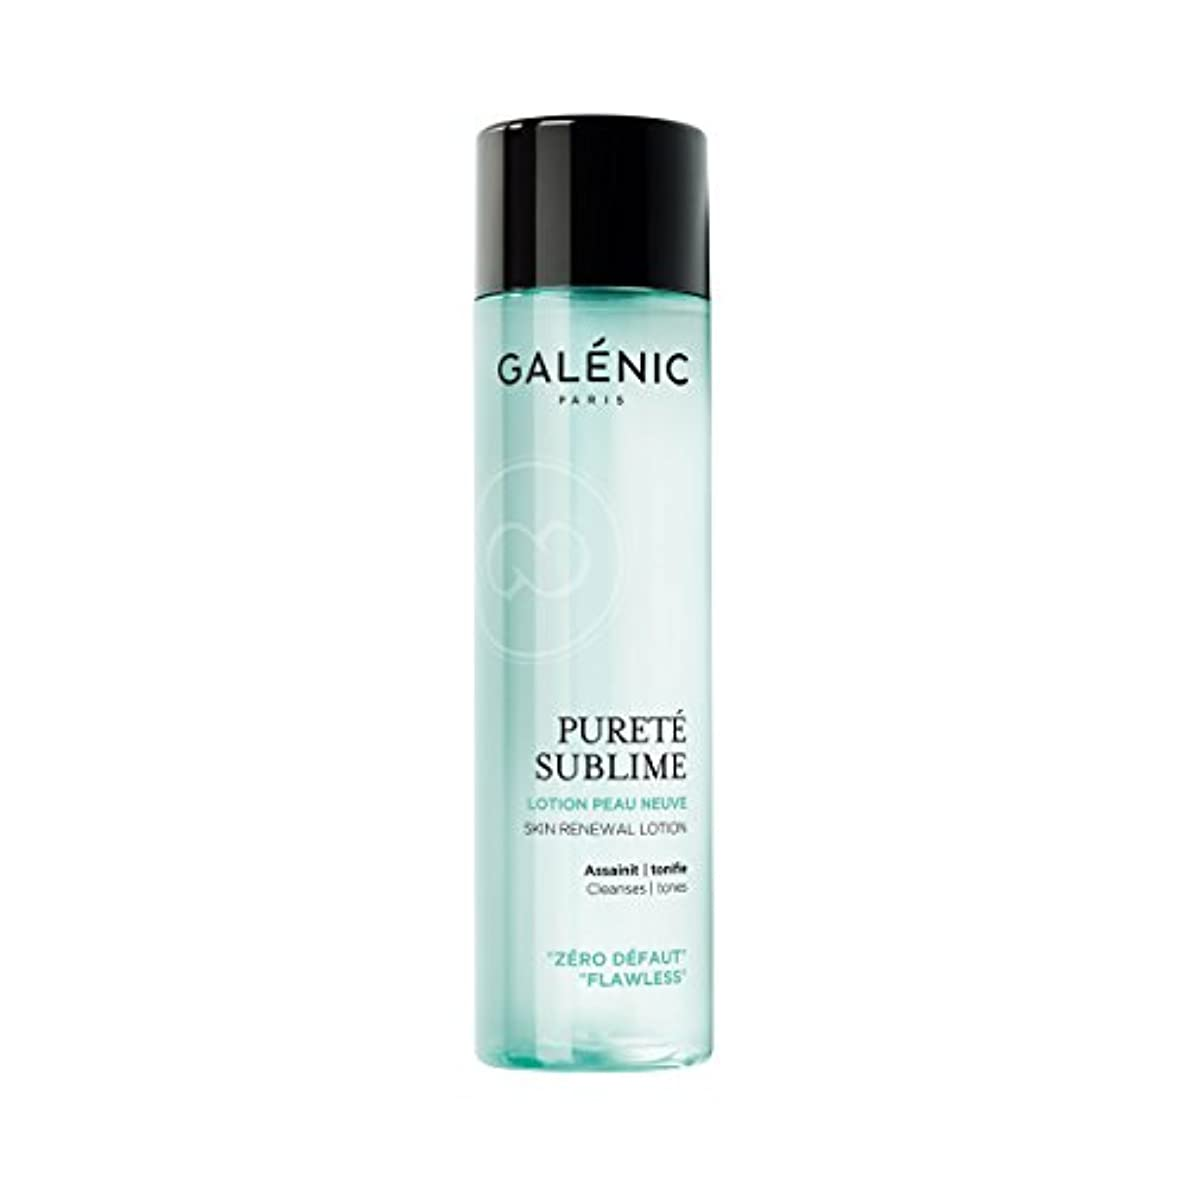 Galenic Puret Sublime 200ml Renewal Lotion [並行輸入品]